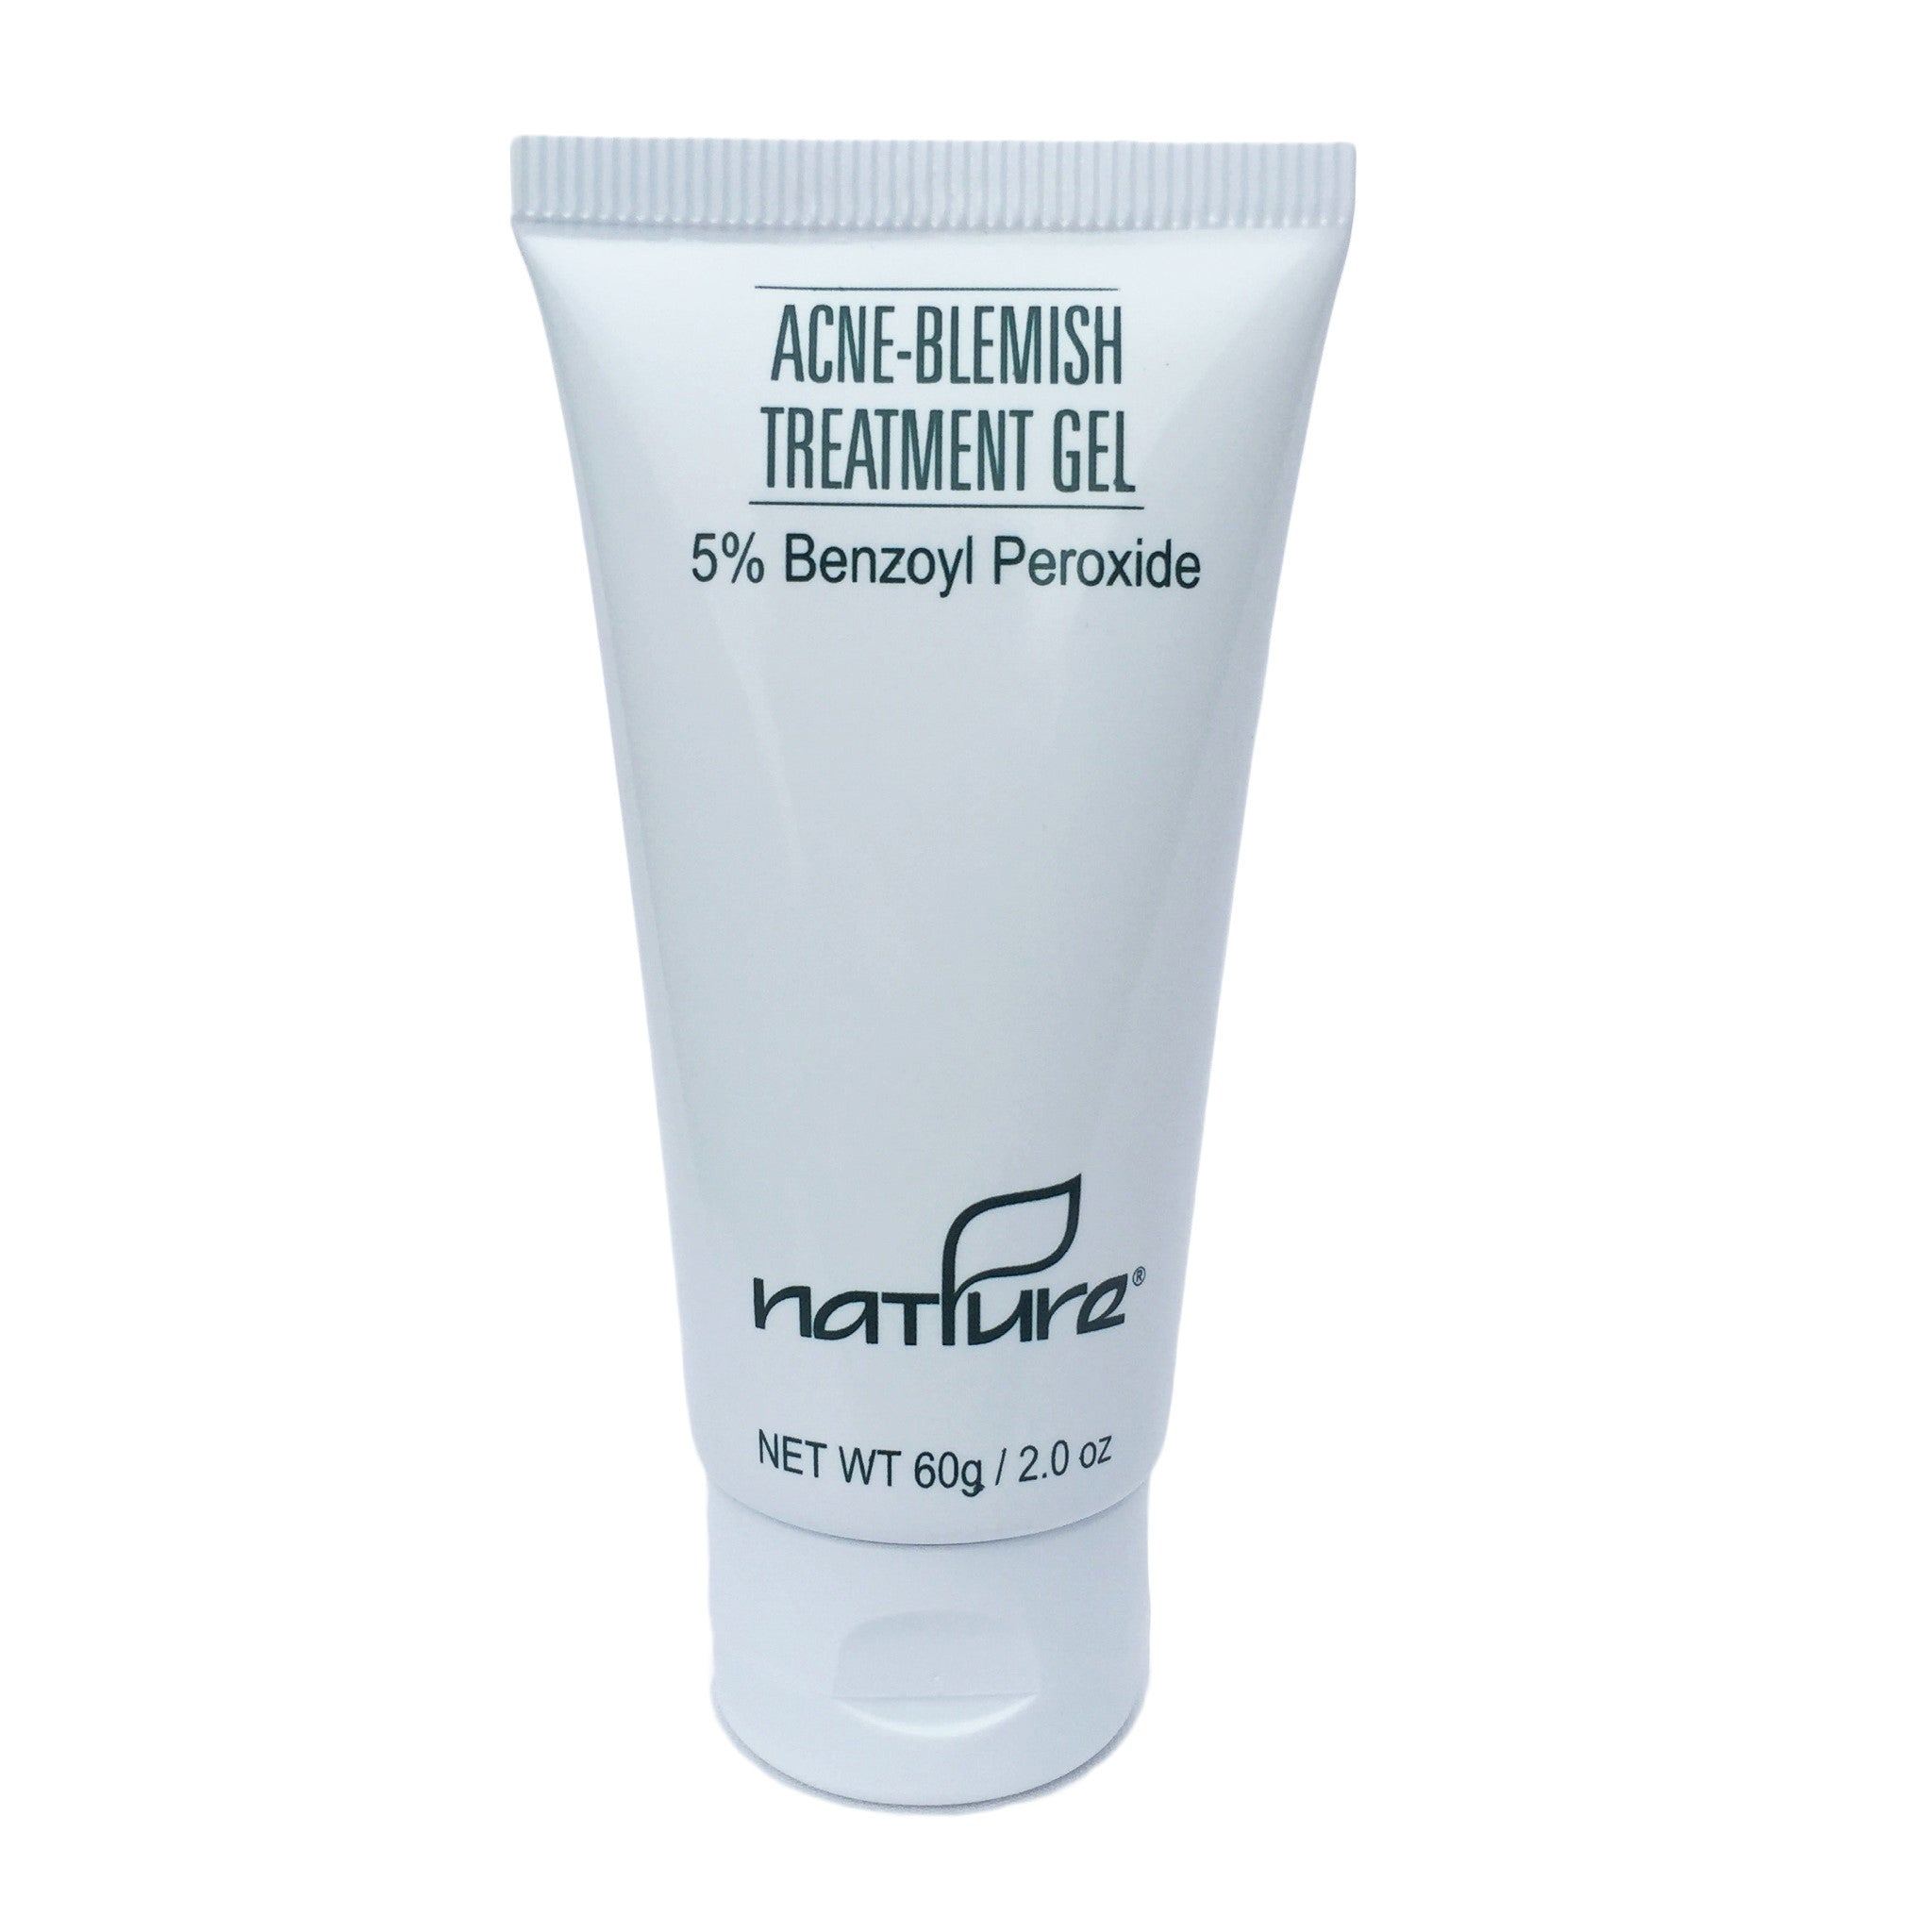 Acne-Blemish Treatment Gel with 5% Benzyol Peroxide